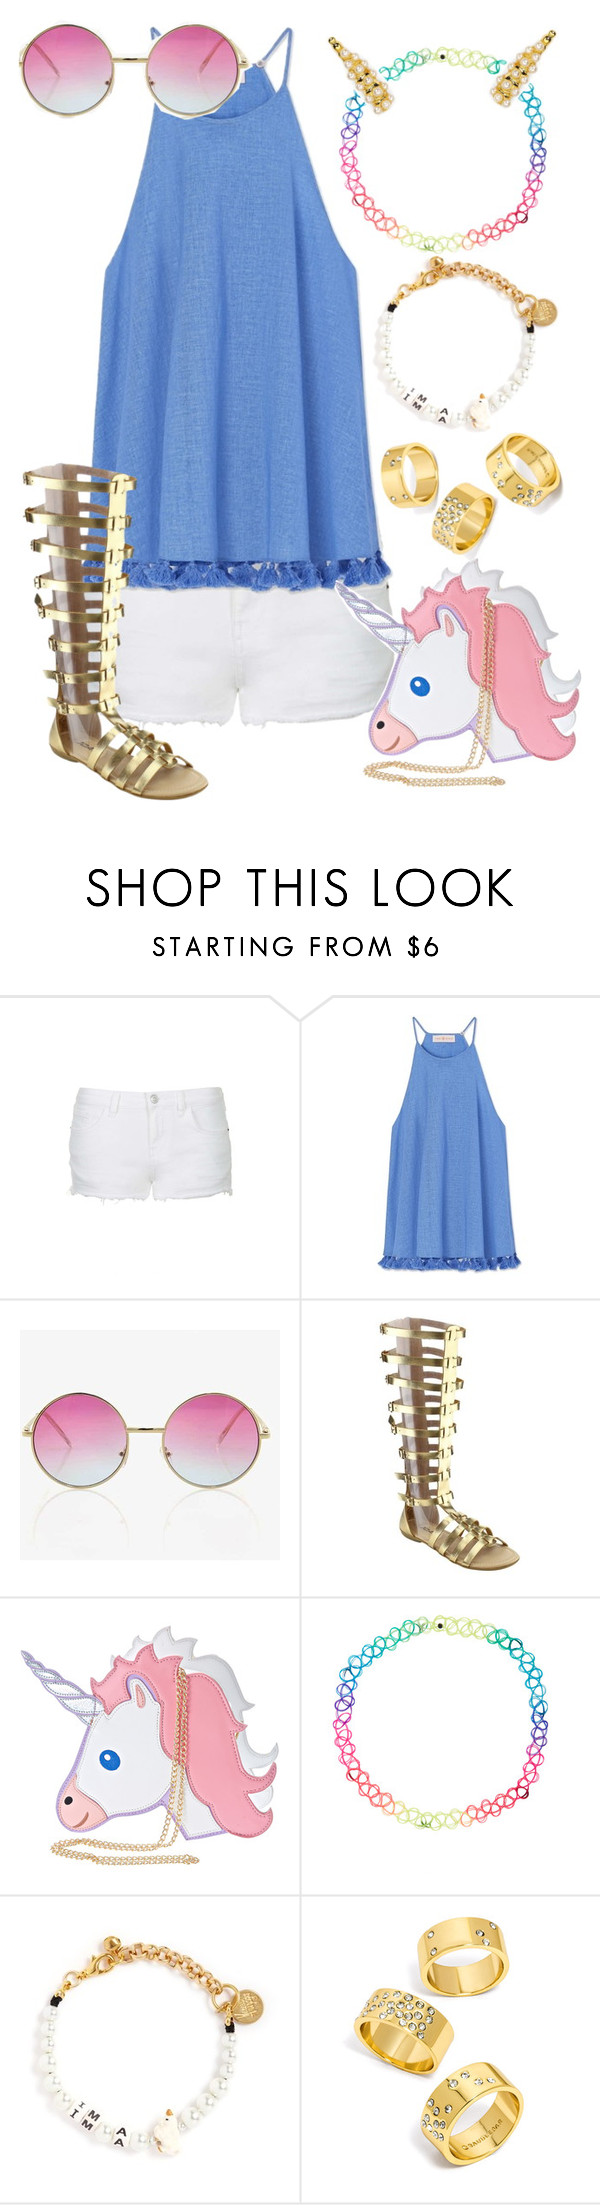 """Sans titre #4048"" by kina-ashley ❤ liked on Polyvore featuring Topshop, Tory Burch, Beston, Nila Anthony, Monsoon, Venessa Arizaga and BaubleBar"